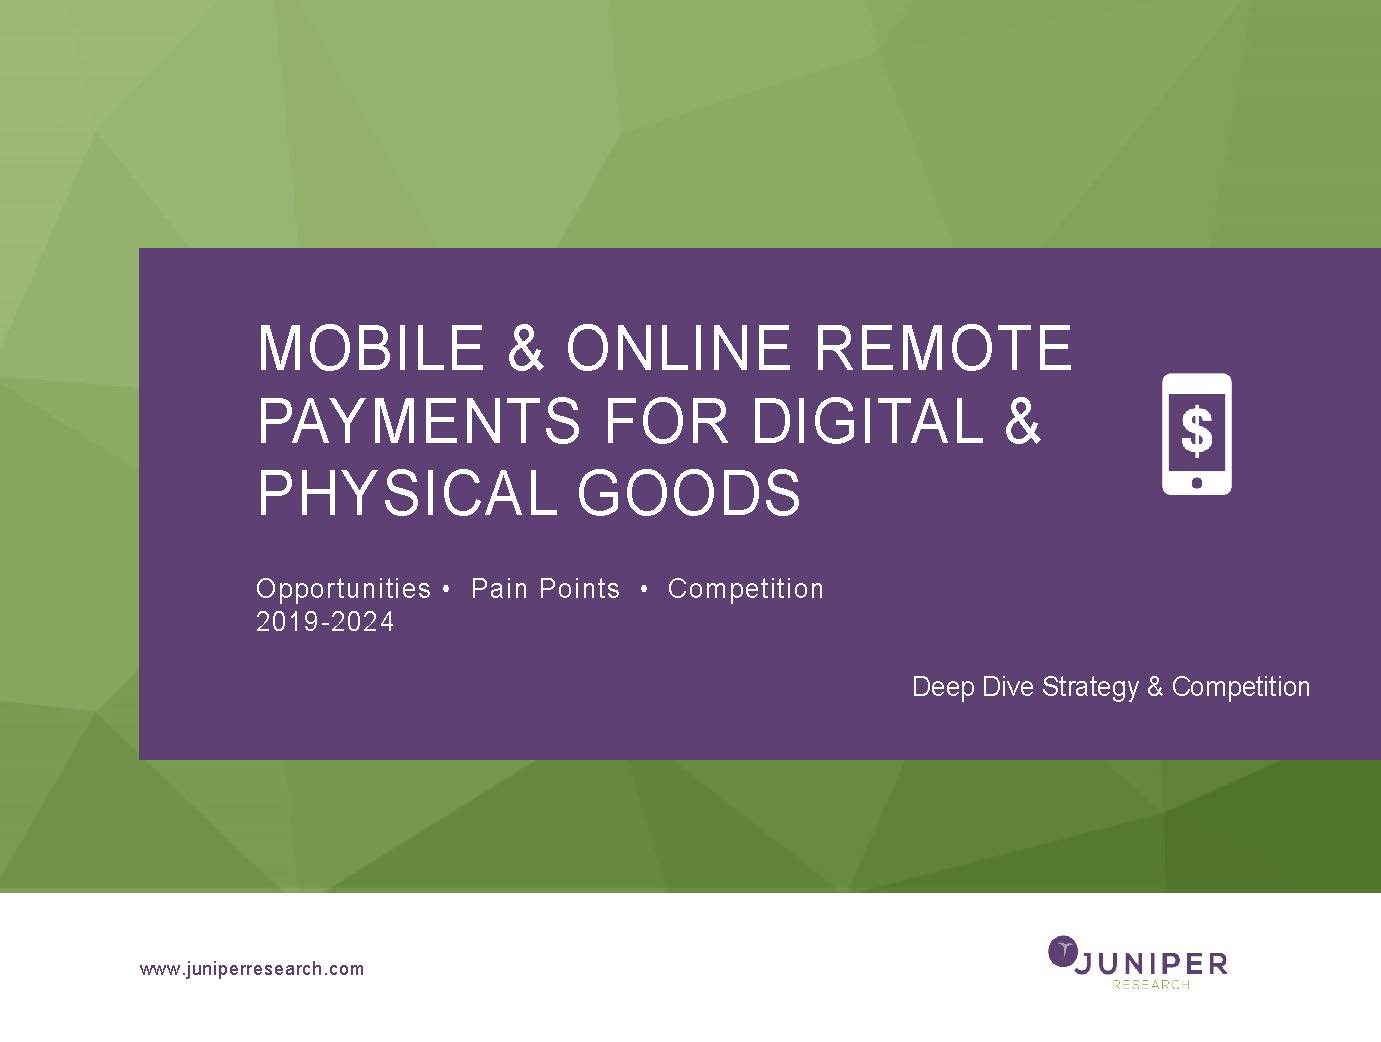 Mobile & Online Remote Payments for Digital & Physical Goods: Deep Dive Strategy & Competition 2019-2024